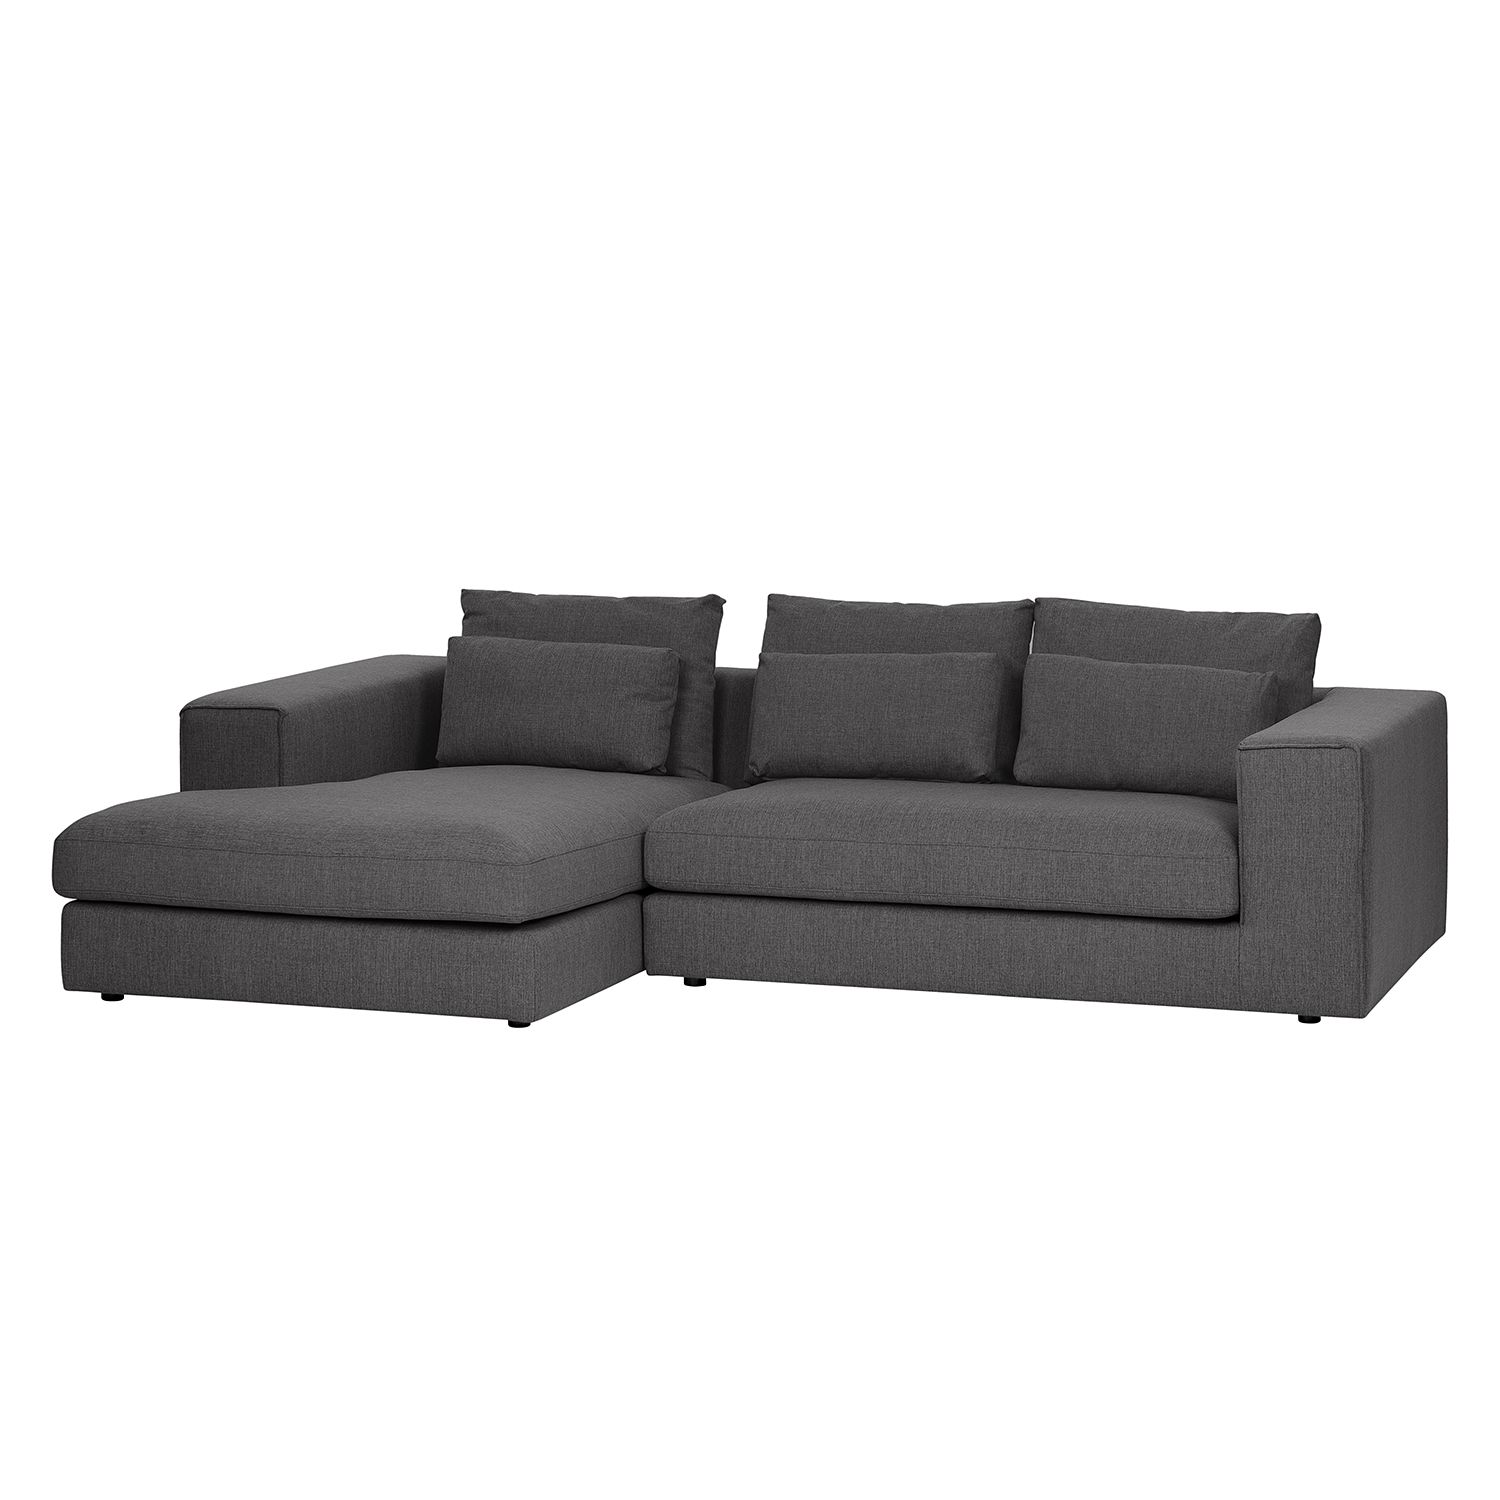 kleines sofa mit ottomane myvictim. Black Bedroom Furniture Sets. Home Design Ideas